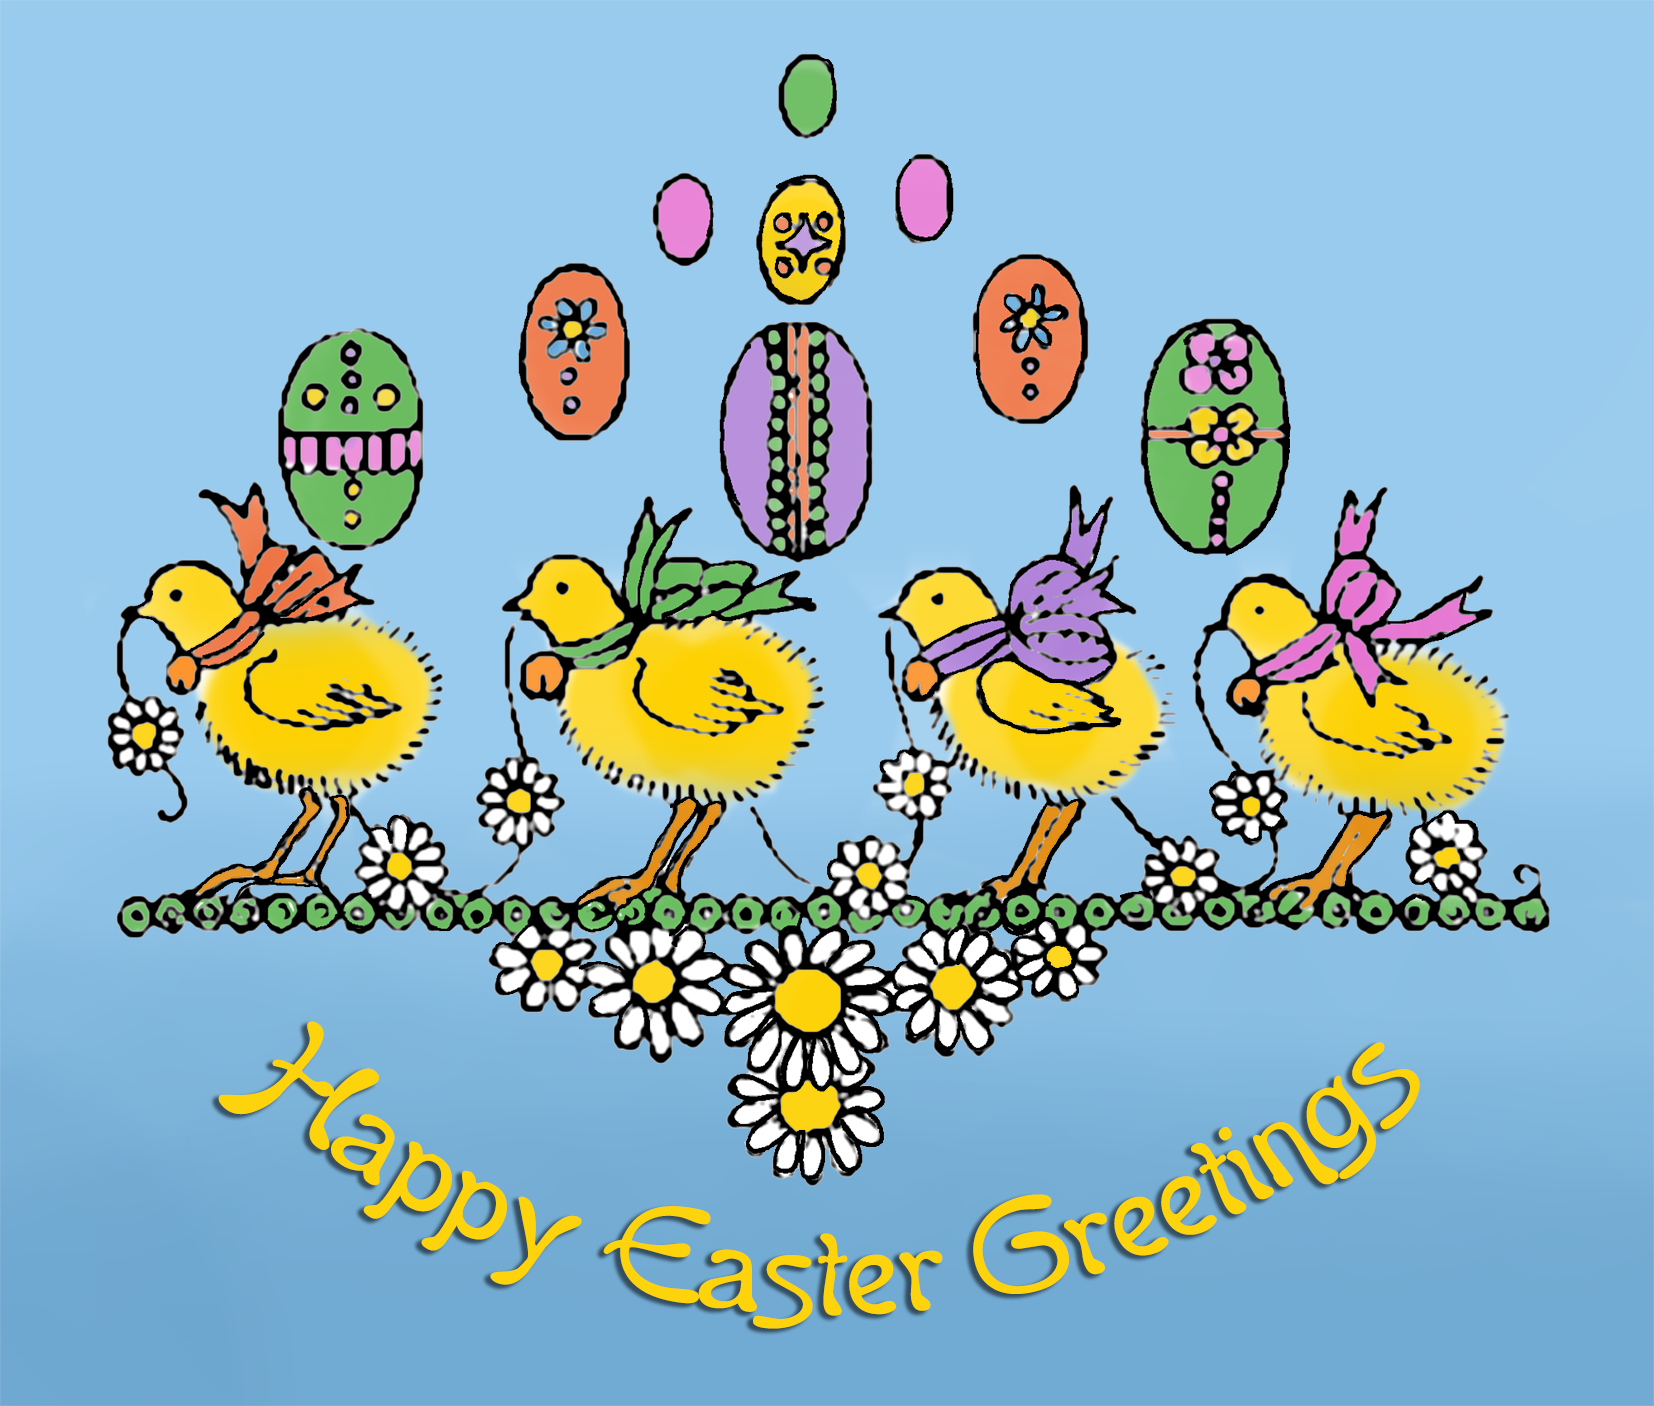 Beautiful printable Easter card with cute chickens and eggs.